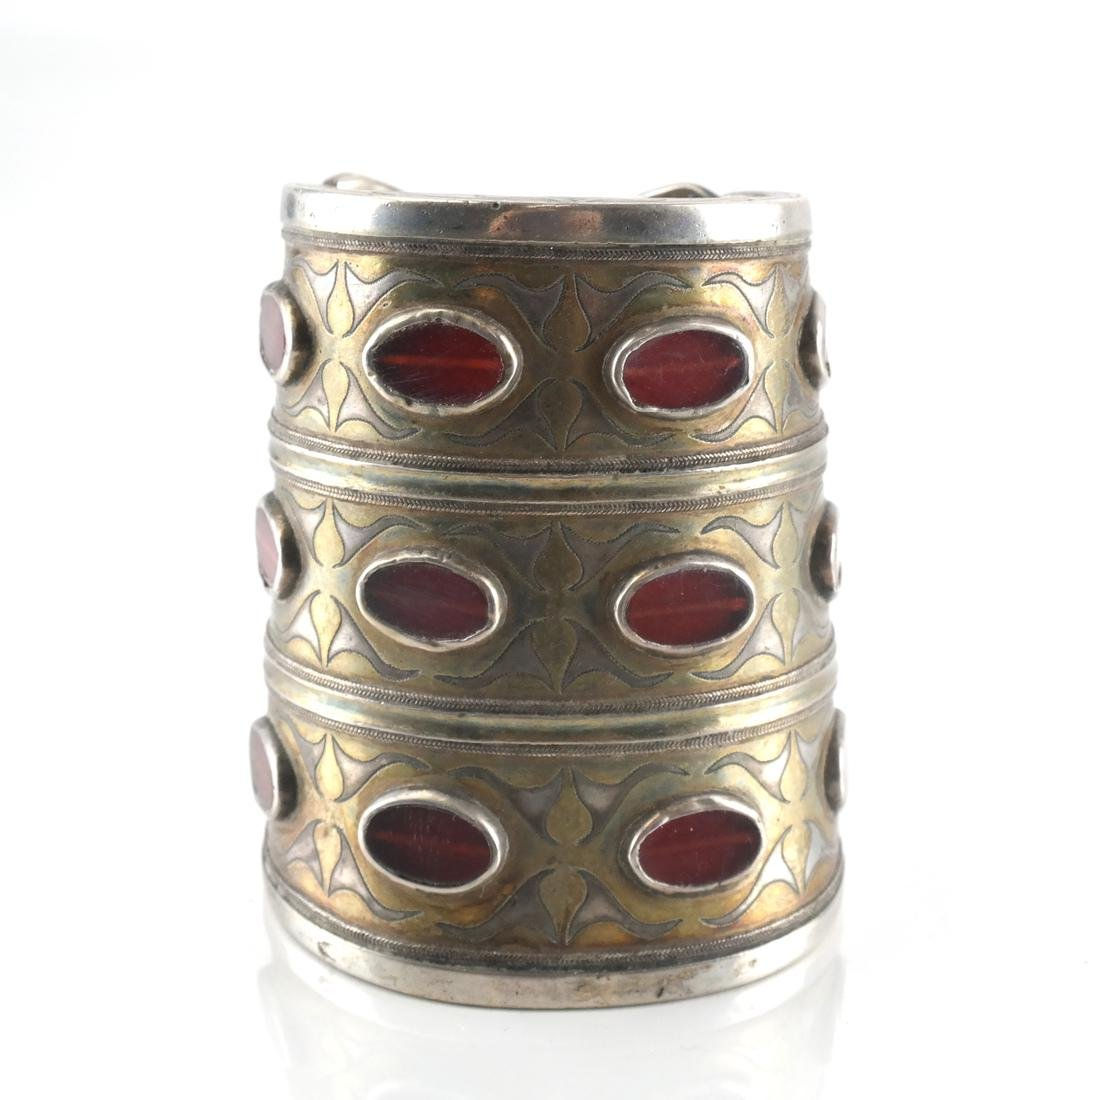 Antique Afghan/Central Asian Silver Jeweled Cuff - 2